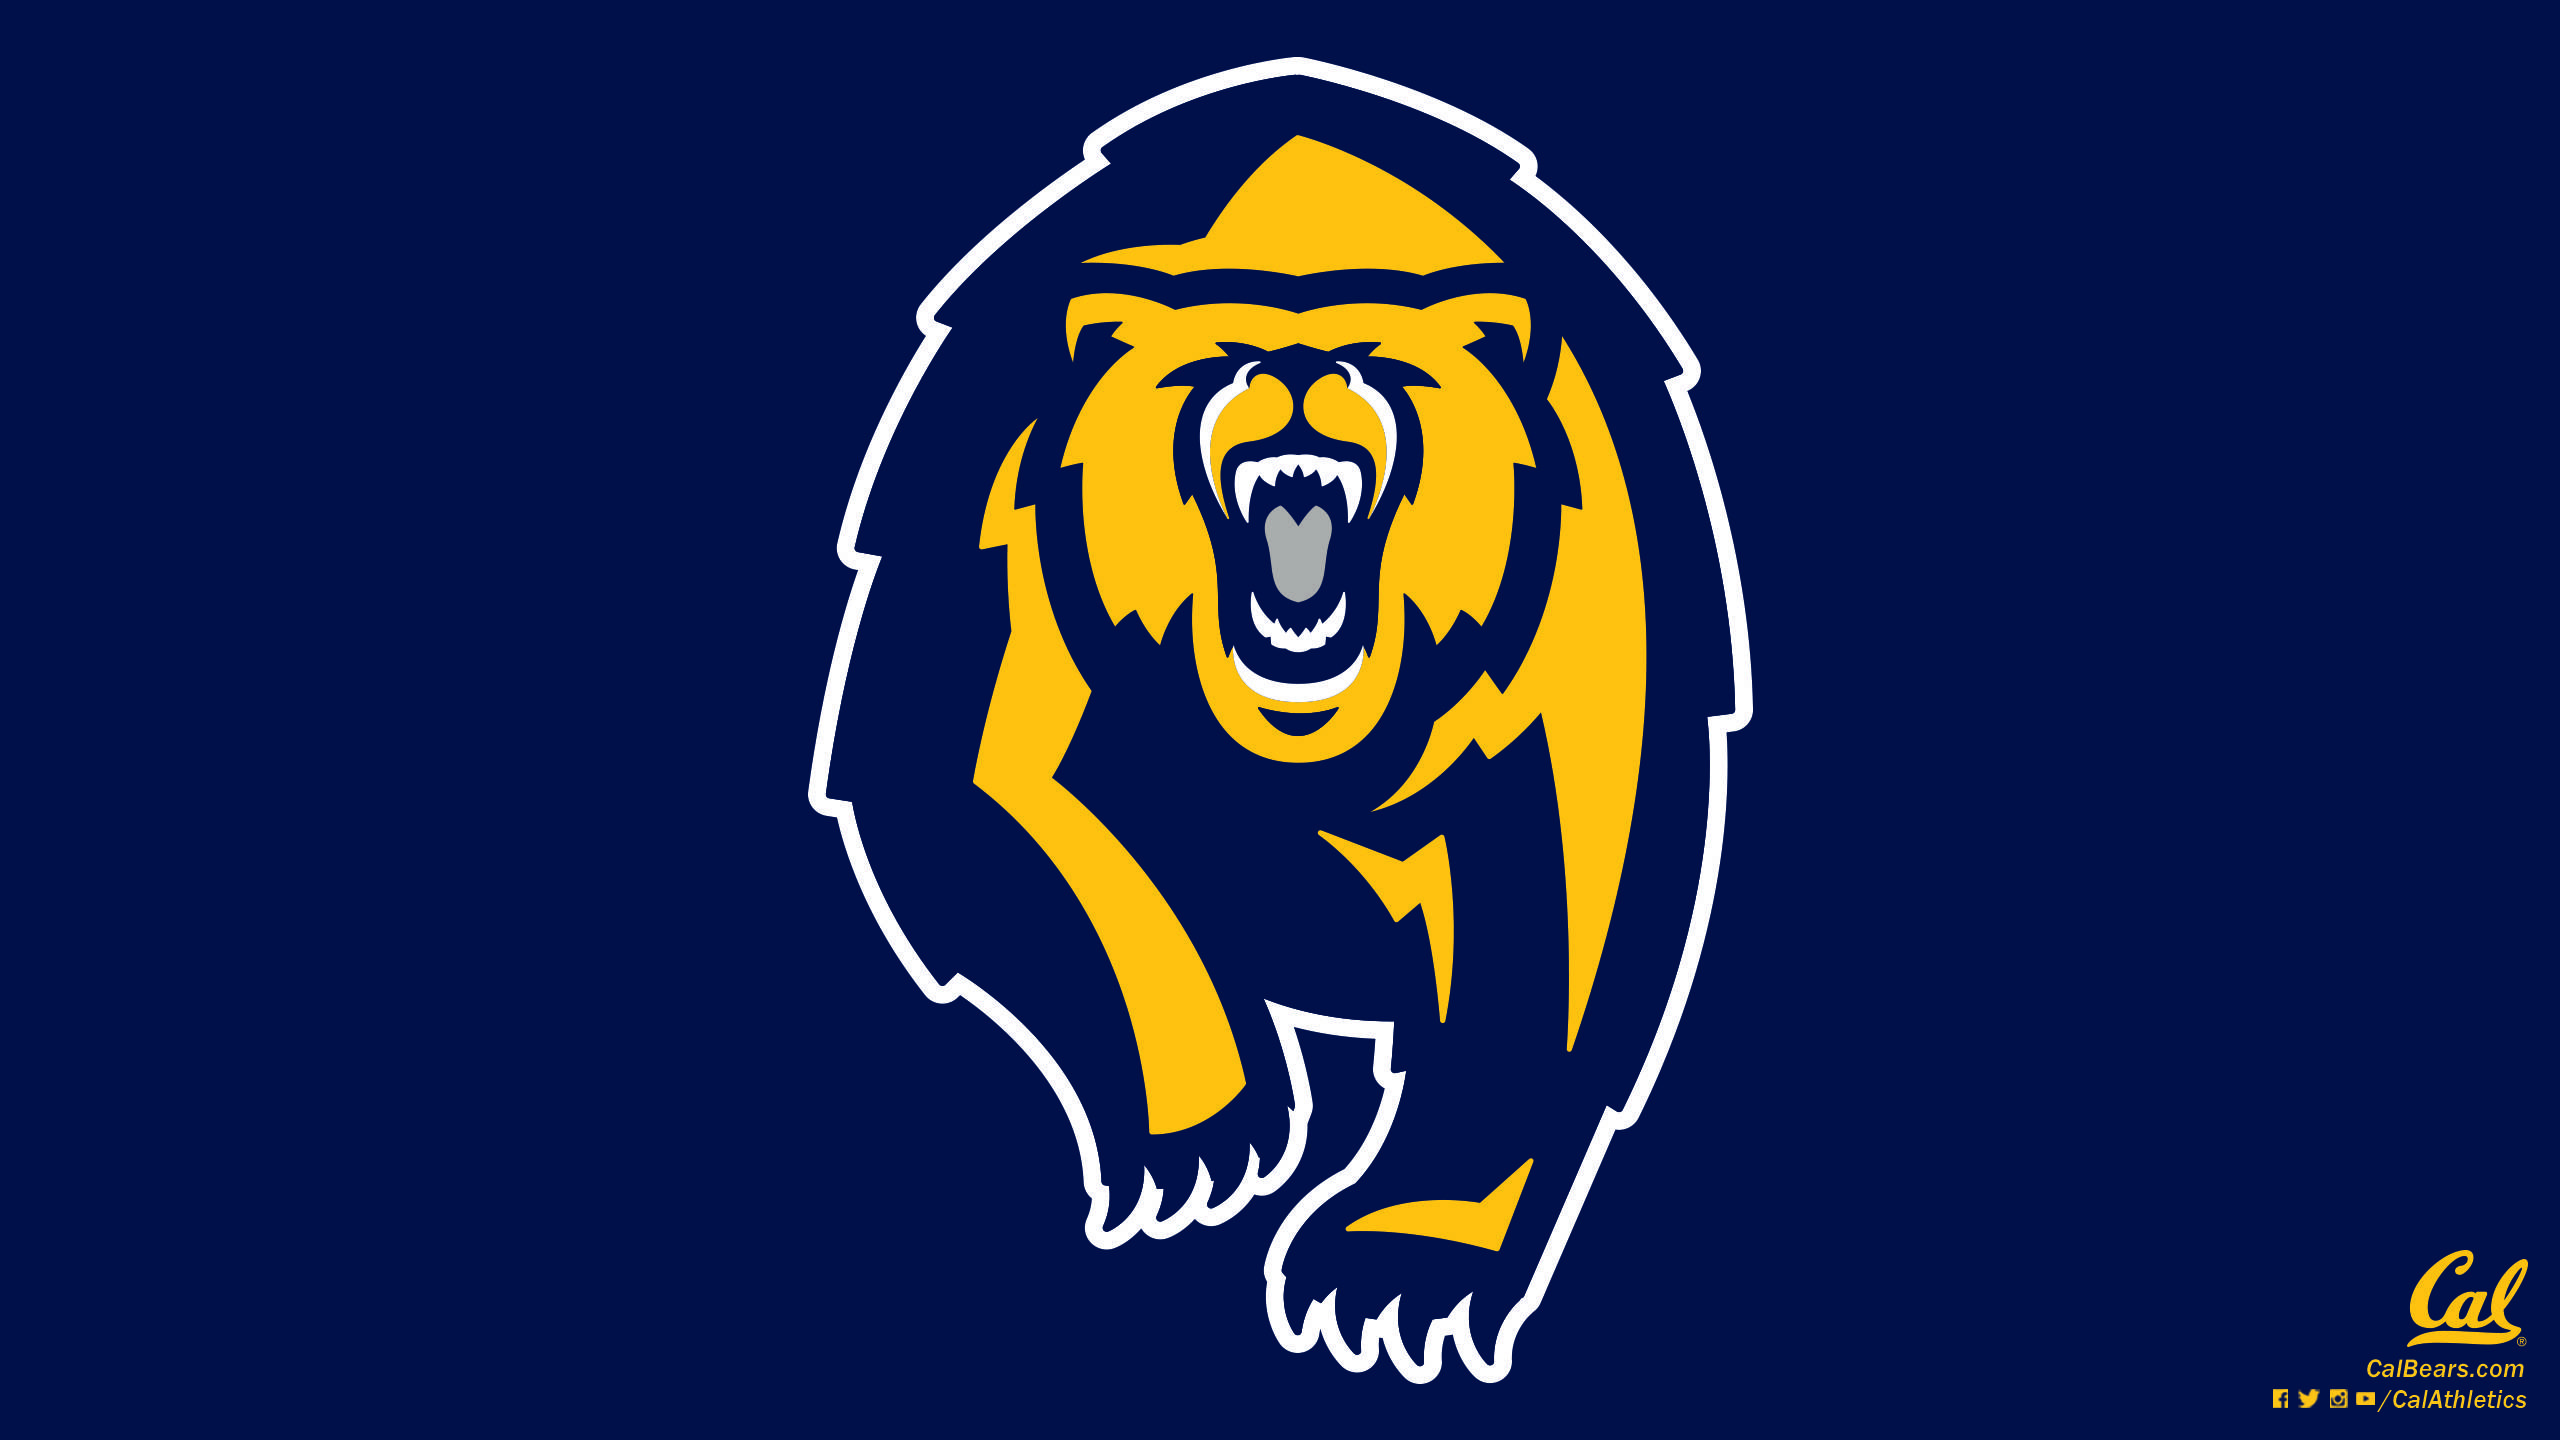 California Golden Bears   Wallpapers   University of California 2560x1440